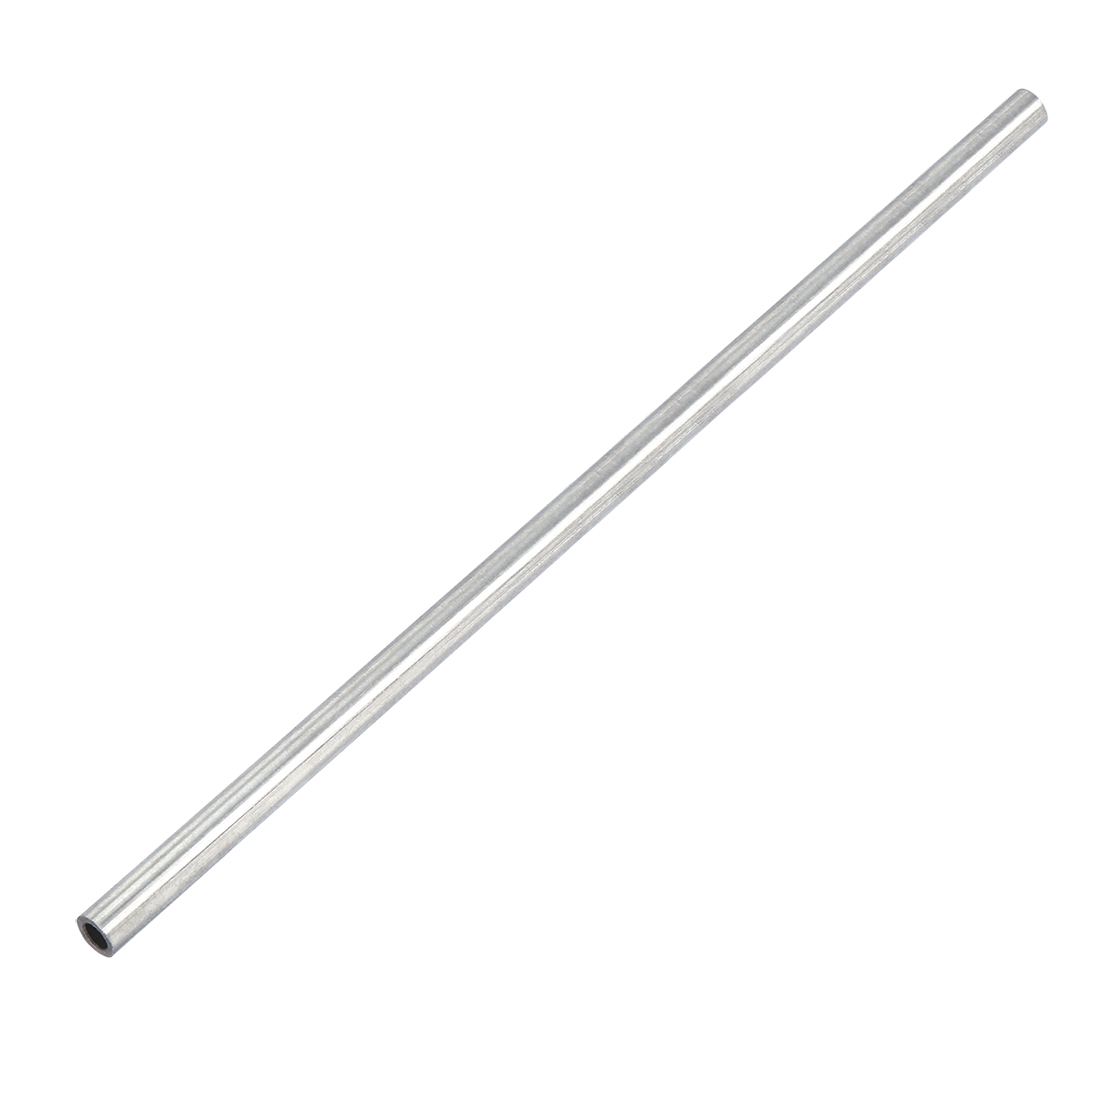 3mmx2mm 304 Stainless Steel Round Shaft Rod Axle 150mm Length for RC Toy Car